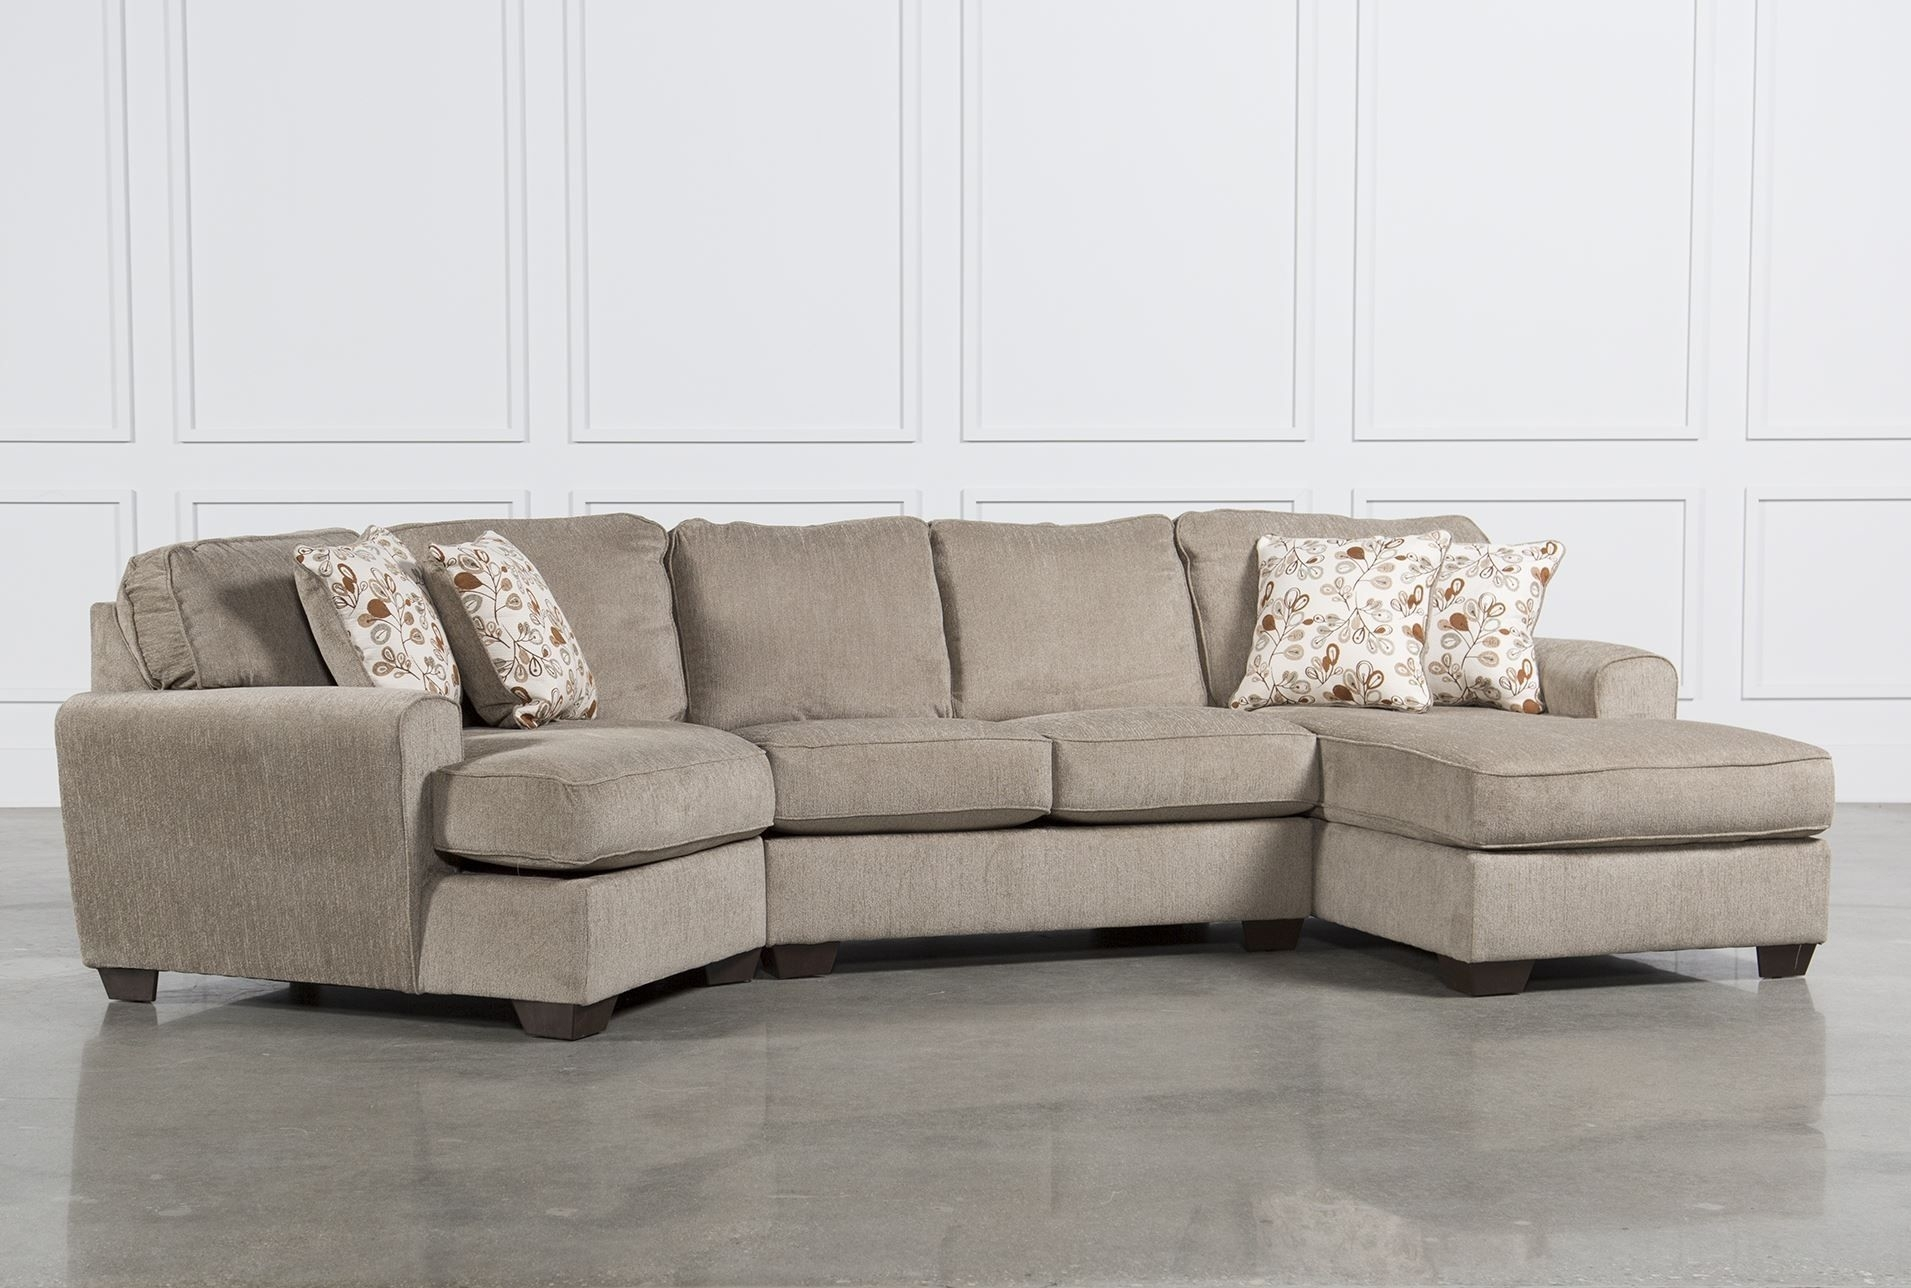 Microfiber Sectional Sofa With Chaise And Cuddle – Sectional Sofas Within Sierra Down 3 Piece Sectionals With Laf Chaise (Image 19 of 25)